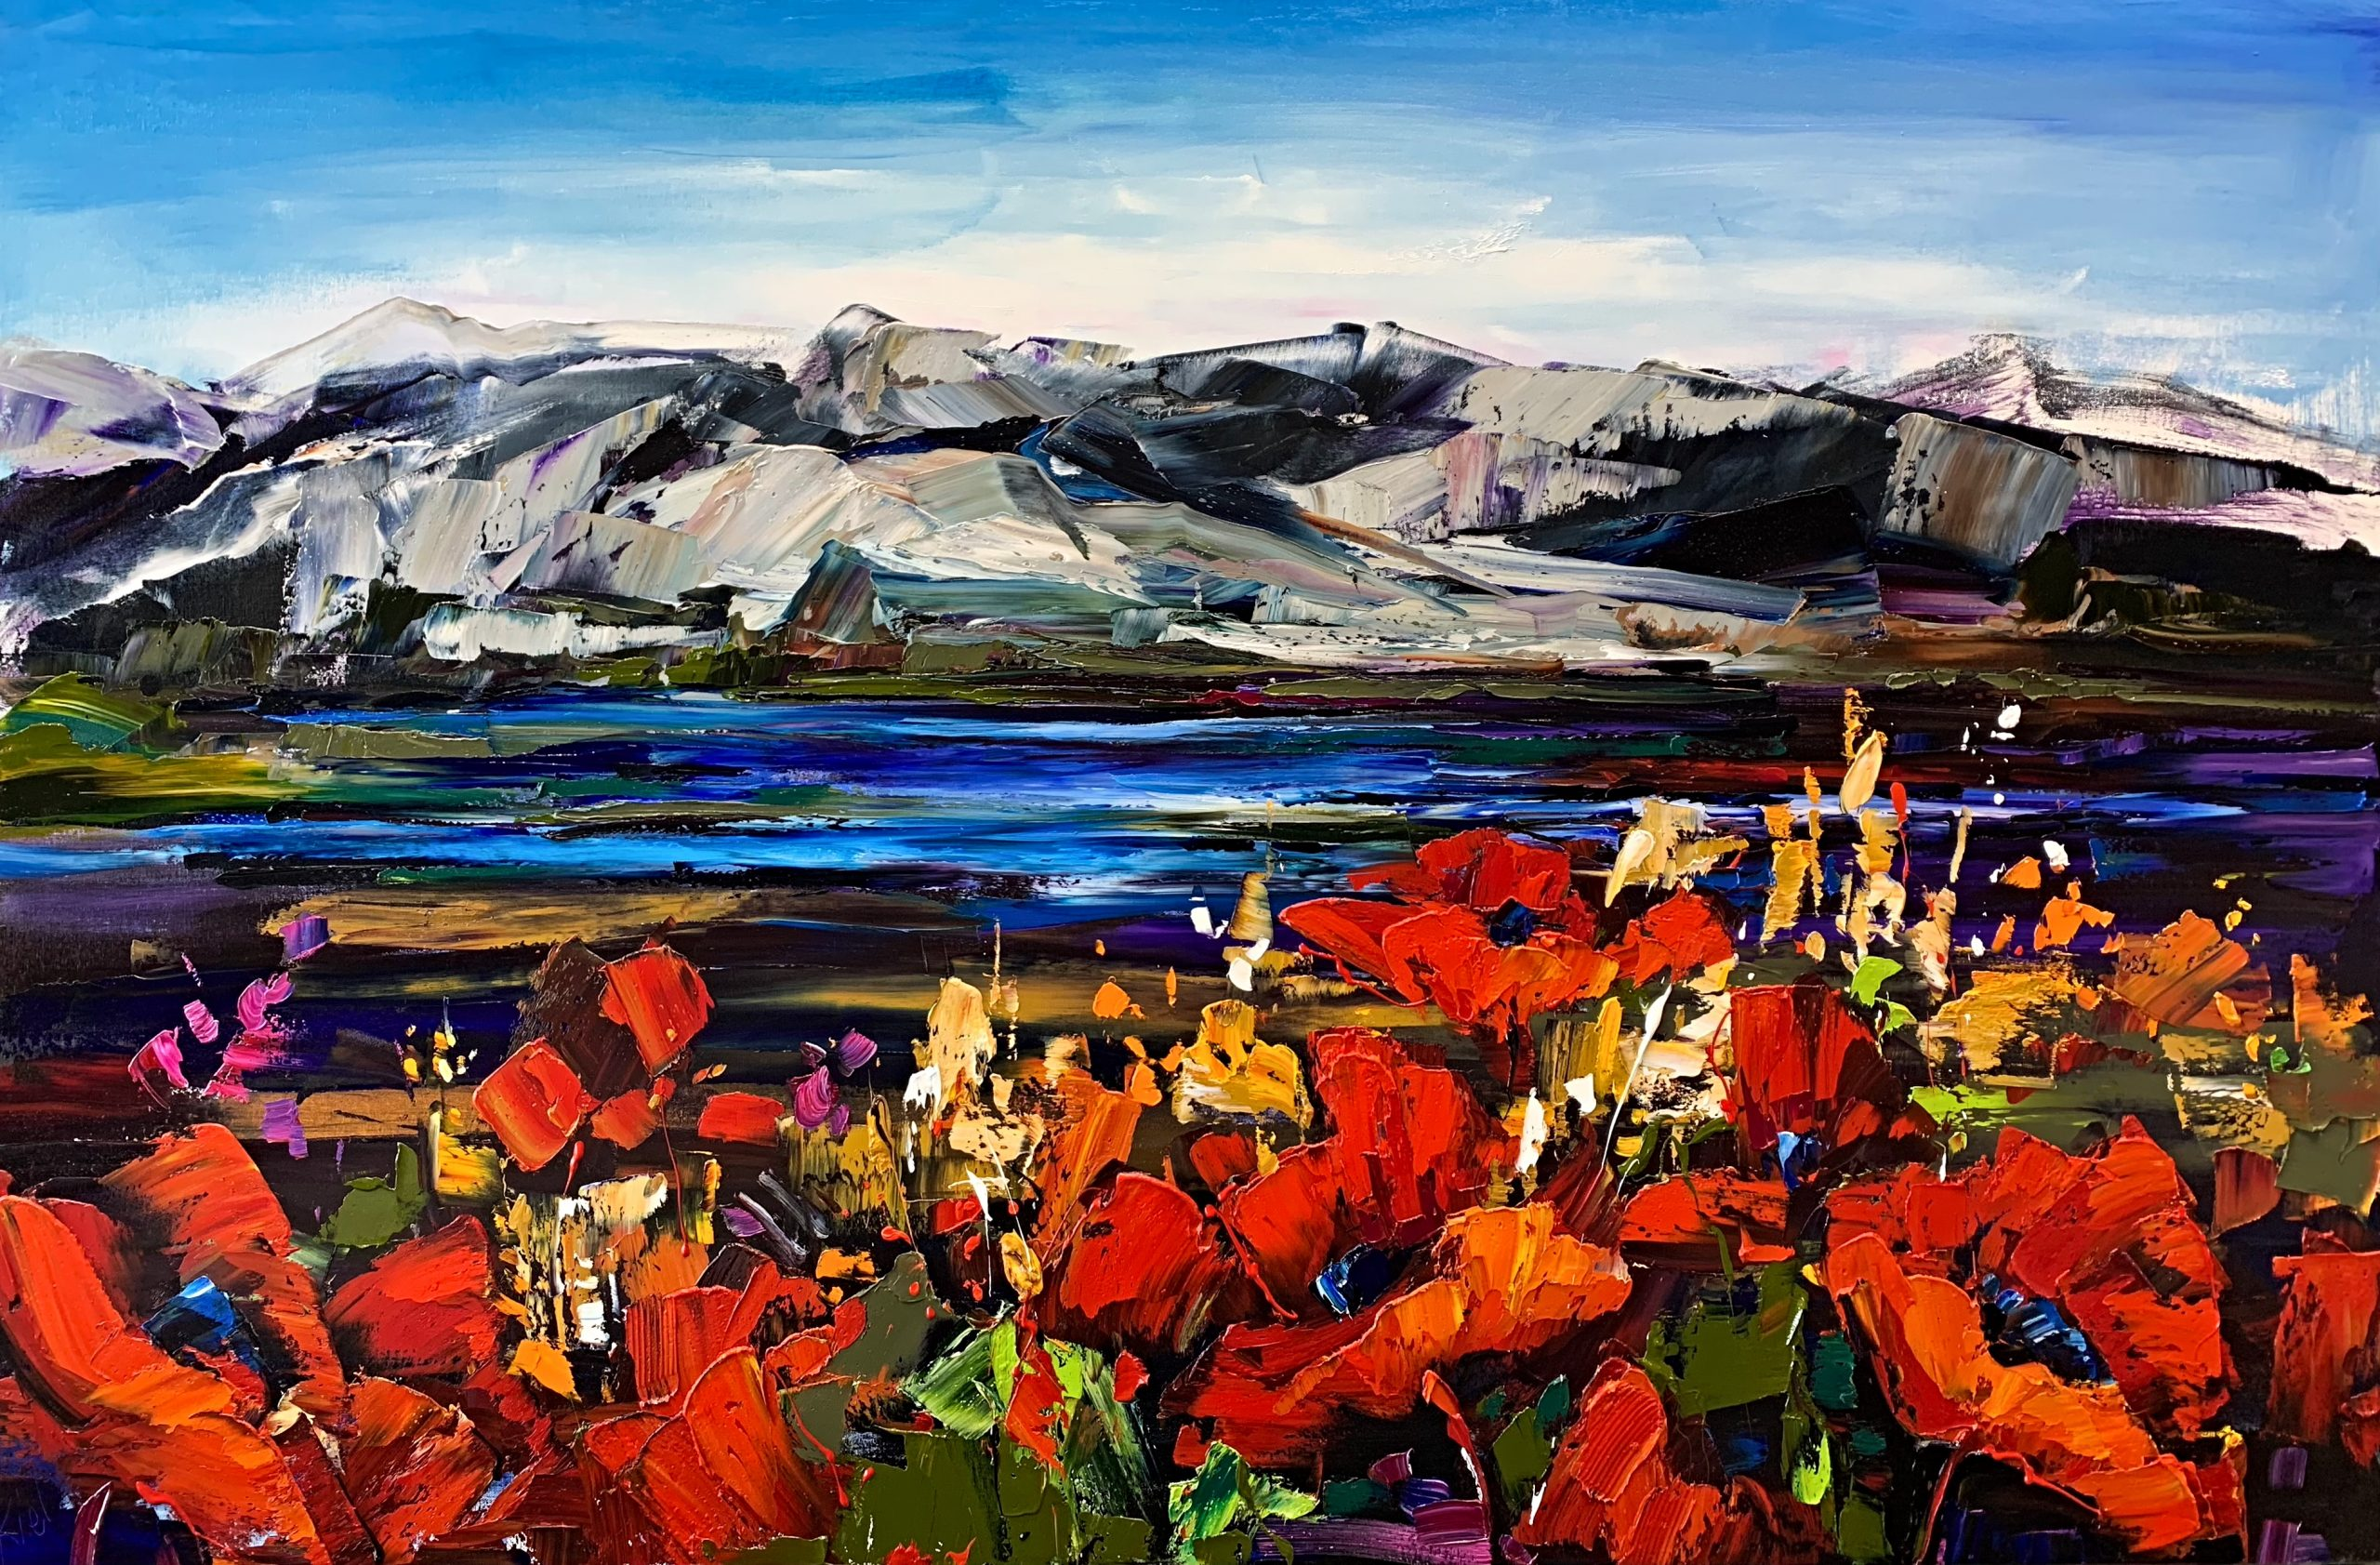 There's Freedom Here, oil landscape painting by Kimberly Kiel | Effusion Art Gallery + Cast Glass Studio, Invermere BC